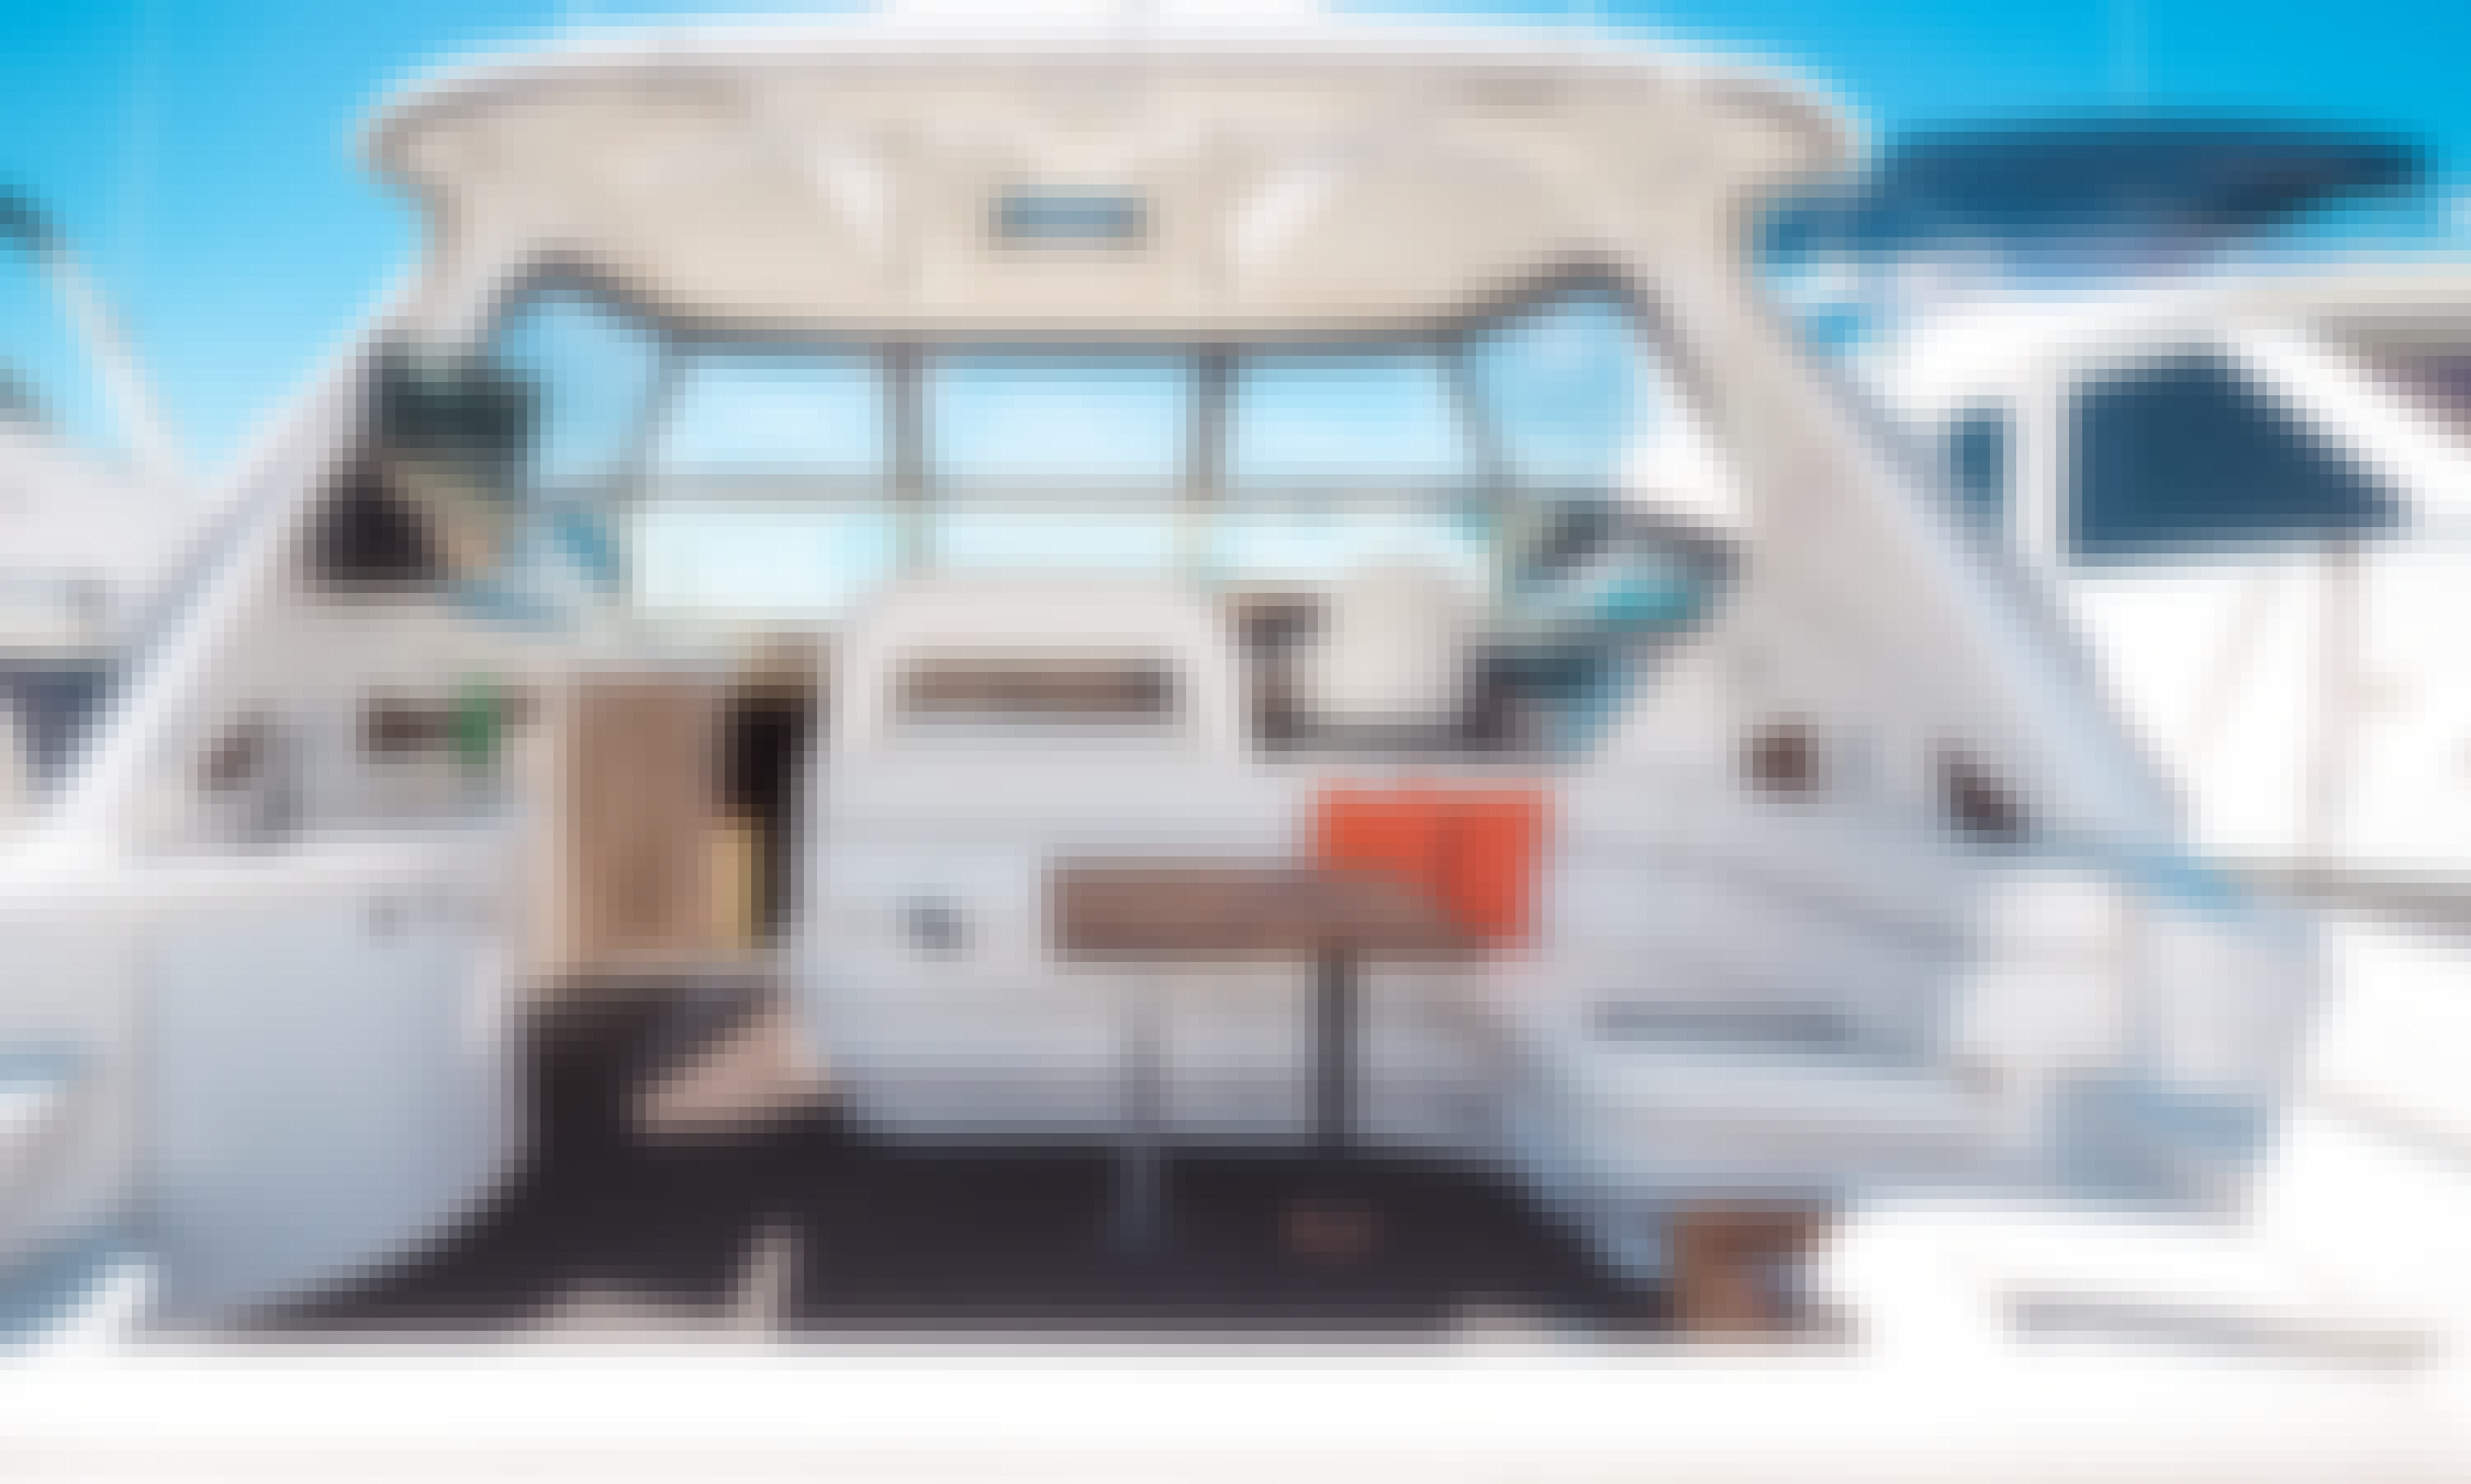 58' SeaRay - Affordable & Luxury Yacht Experience with Jet Ski! Lake WA, San Juans + More!